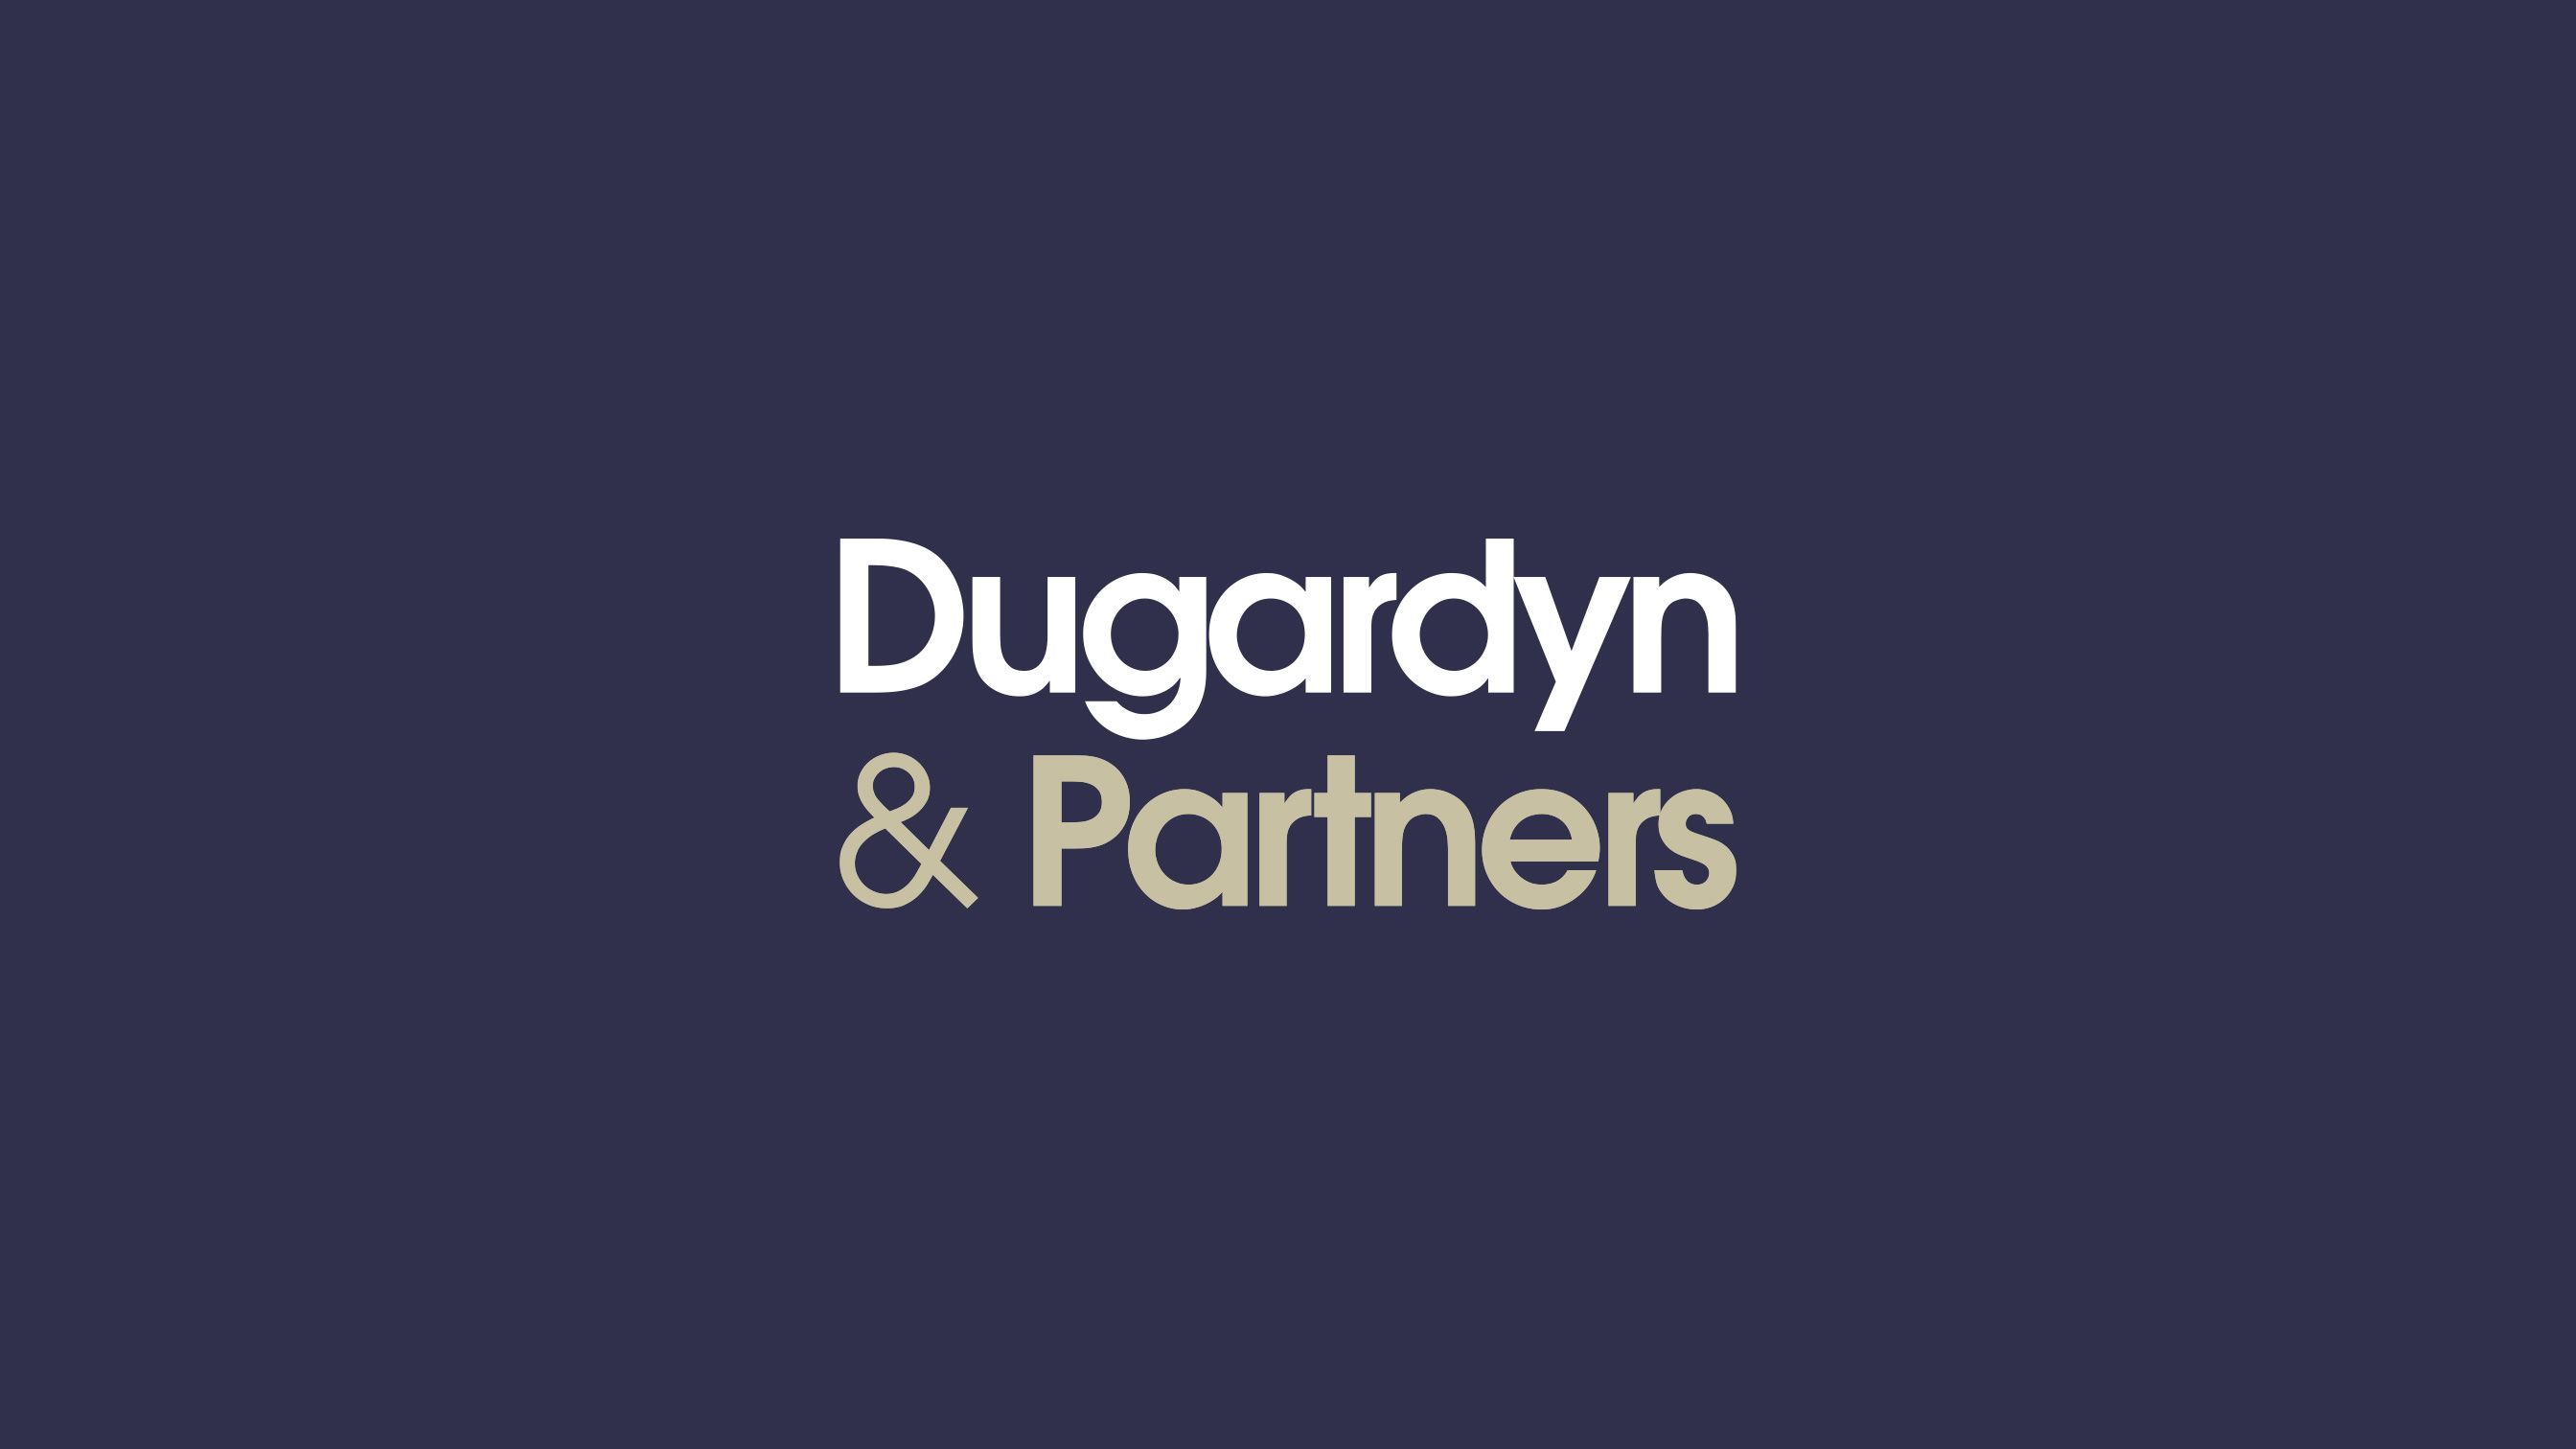 02-dugardyn-et-partners-pikteo-webdesign-graphic-design-freelance-paris-bruxelles-londres